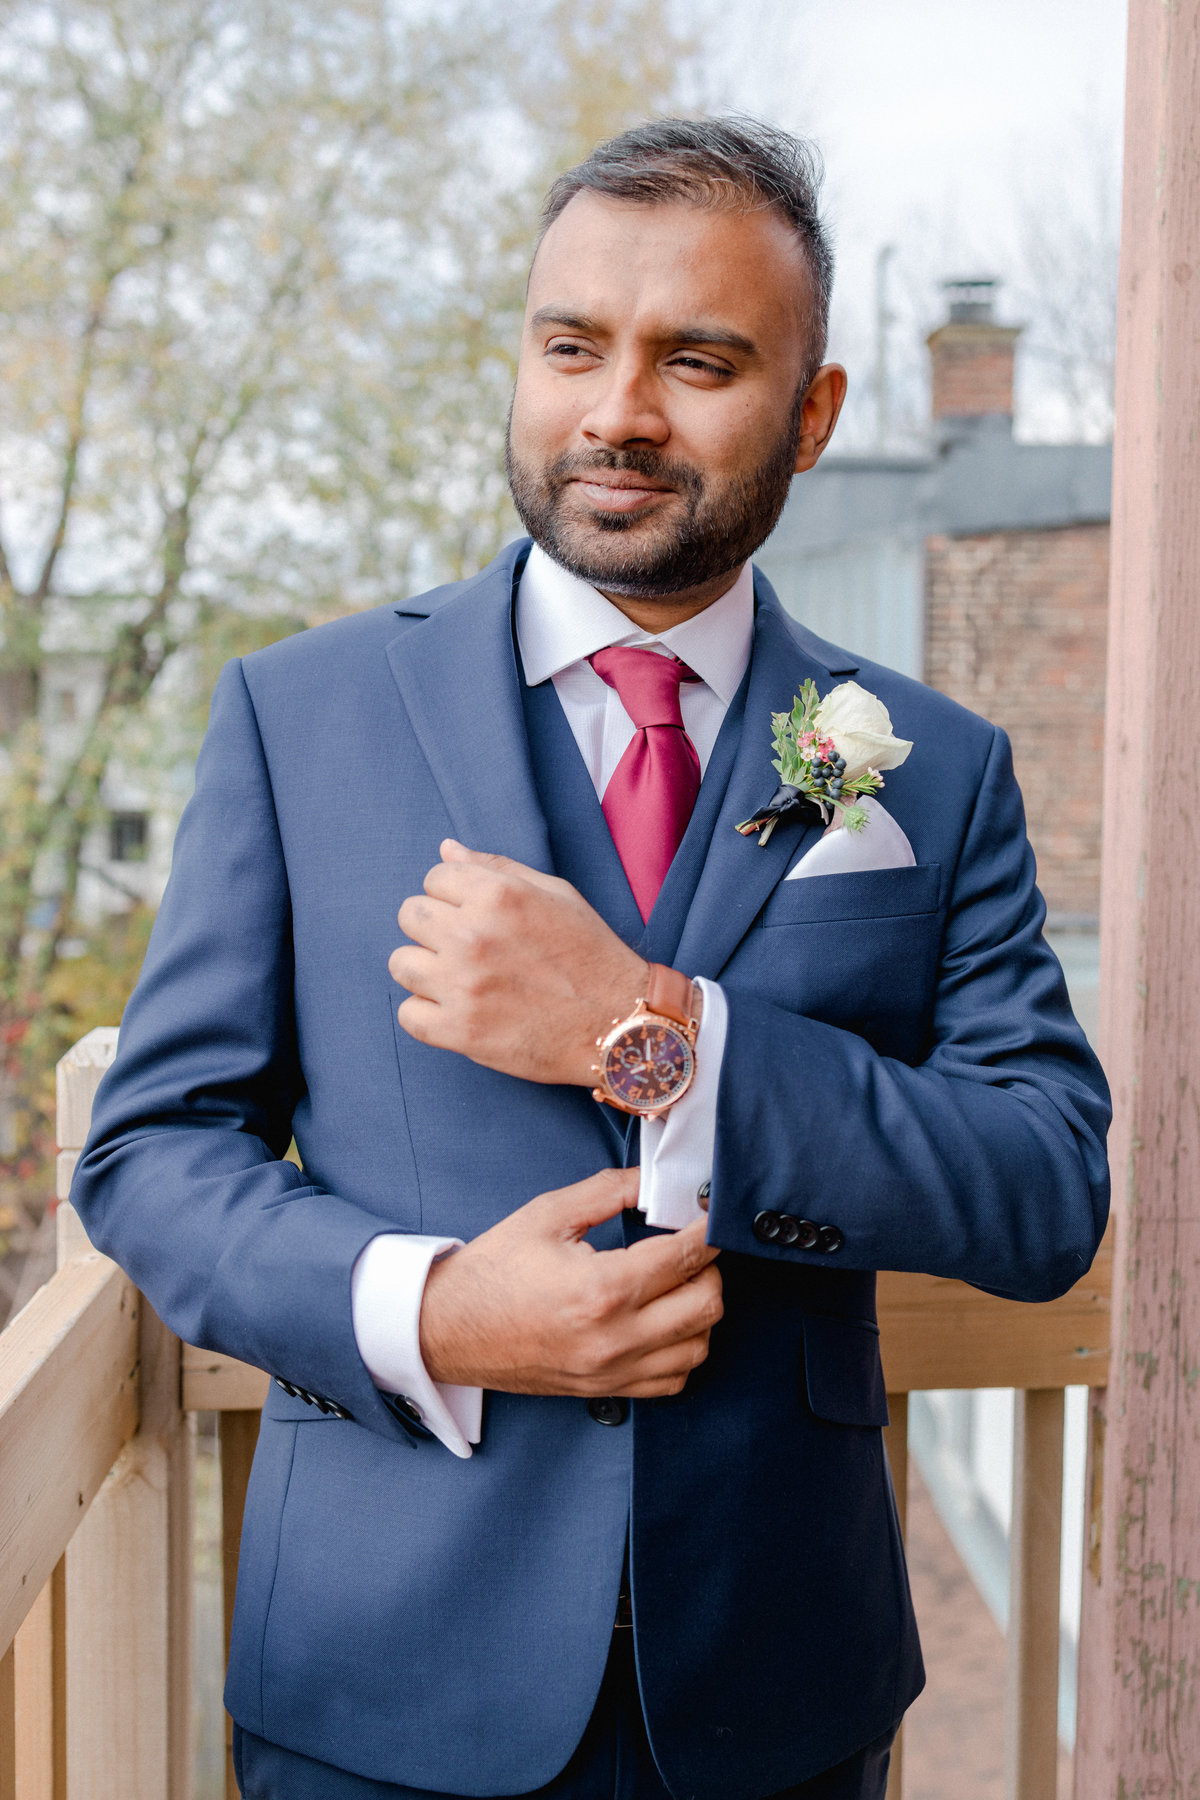 Groom outside on balcony in Montreal showing off his suit, watch, and cufflinks